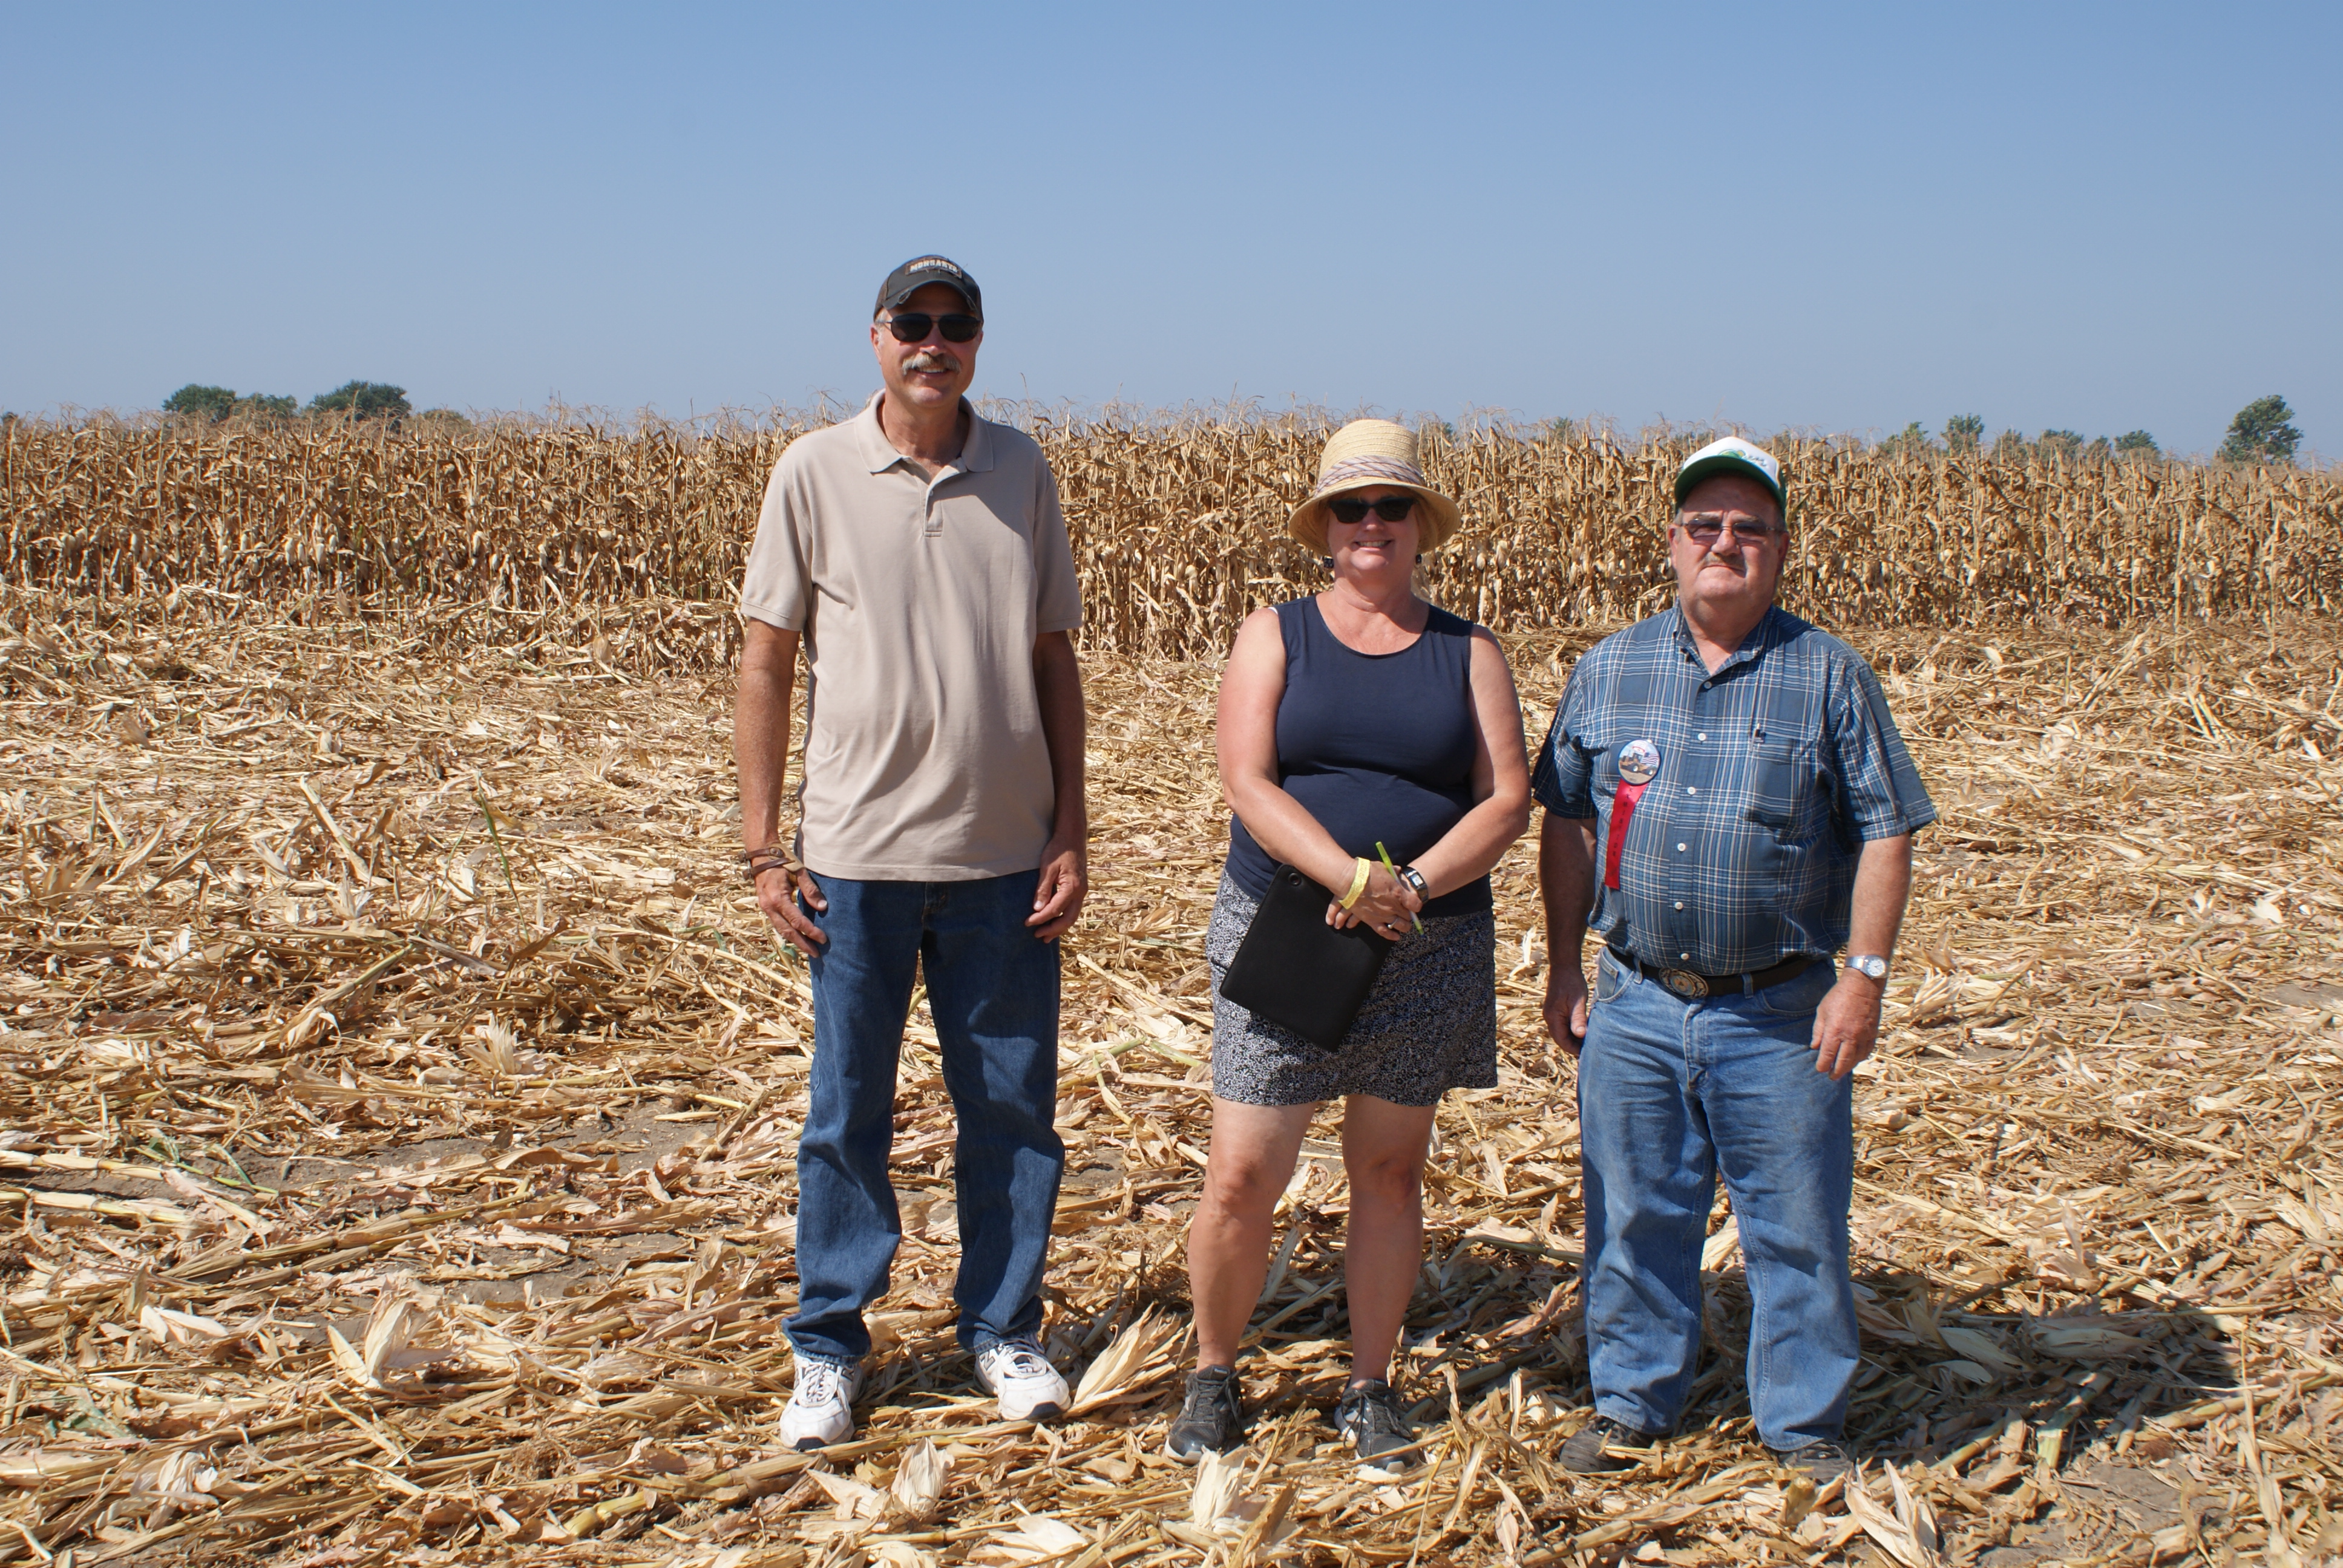 Hand Corn Husking Champions share tips